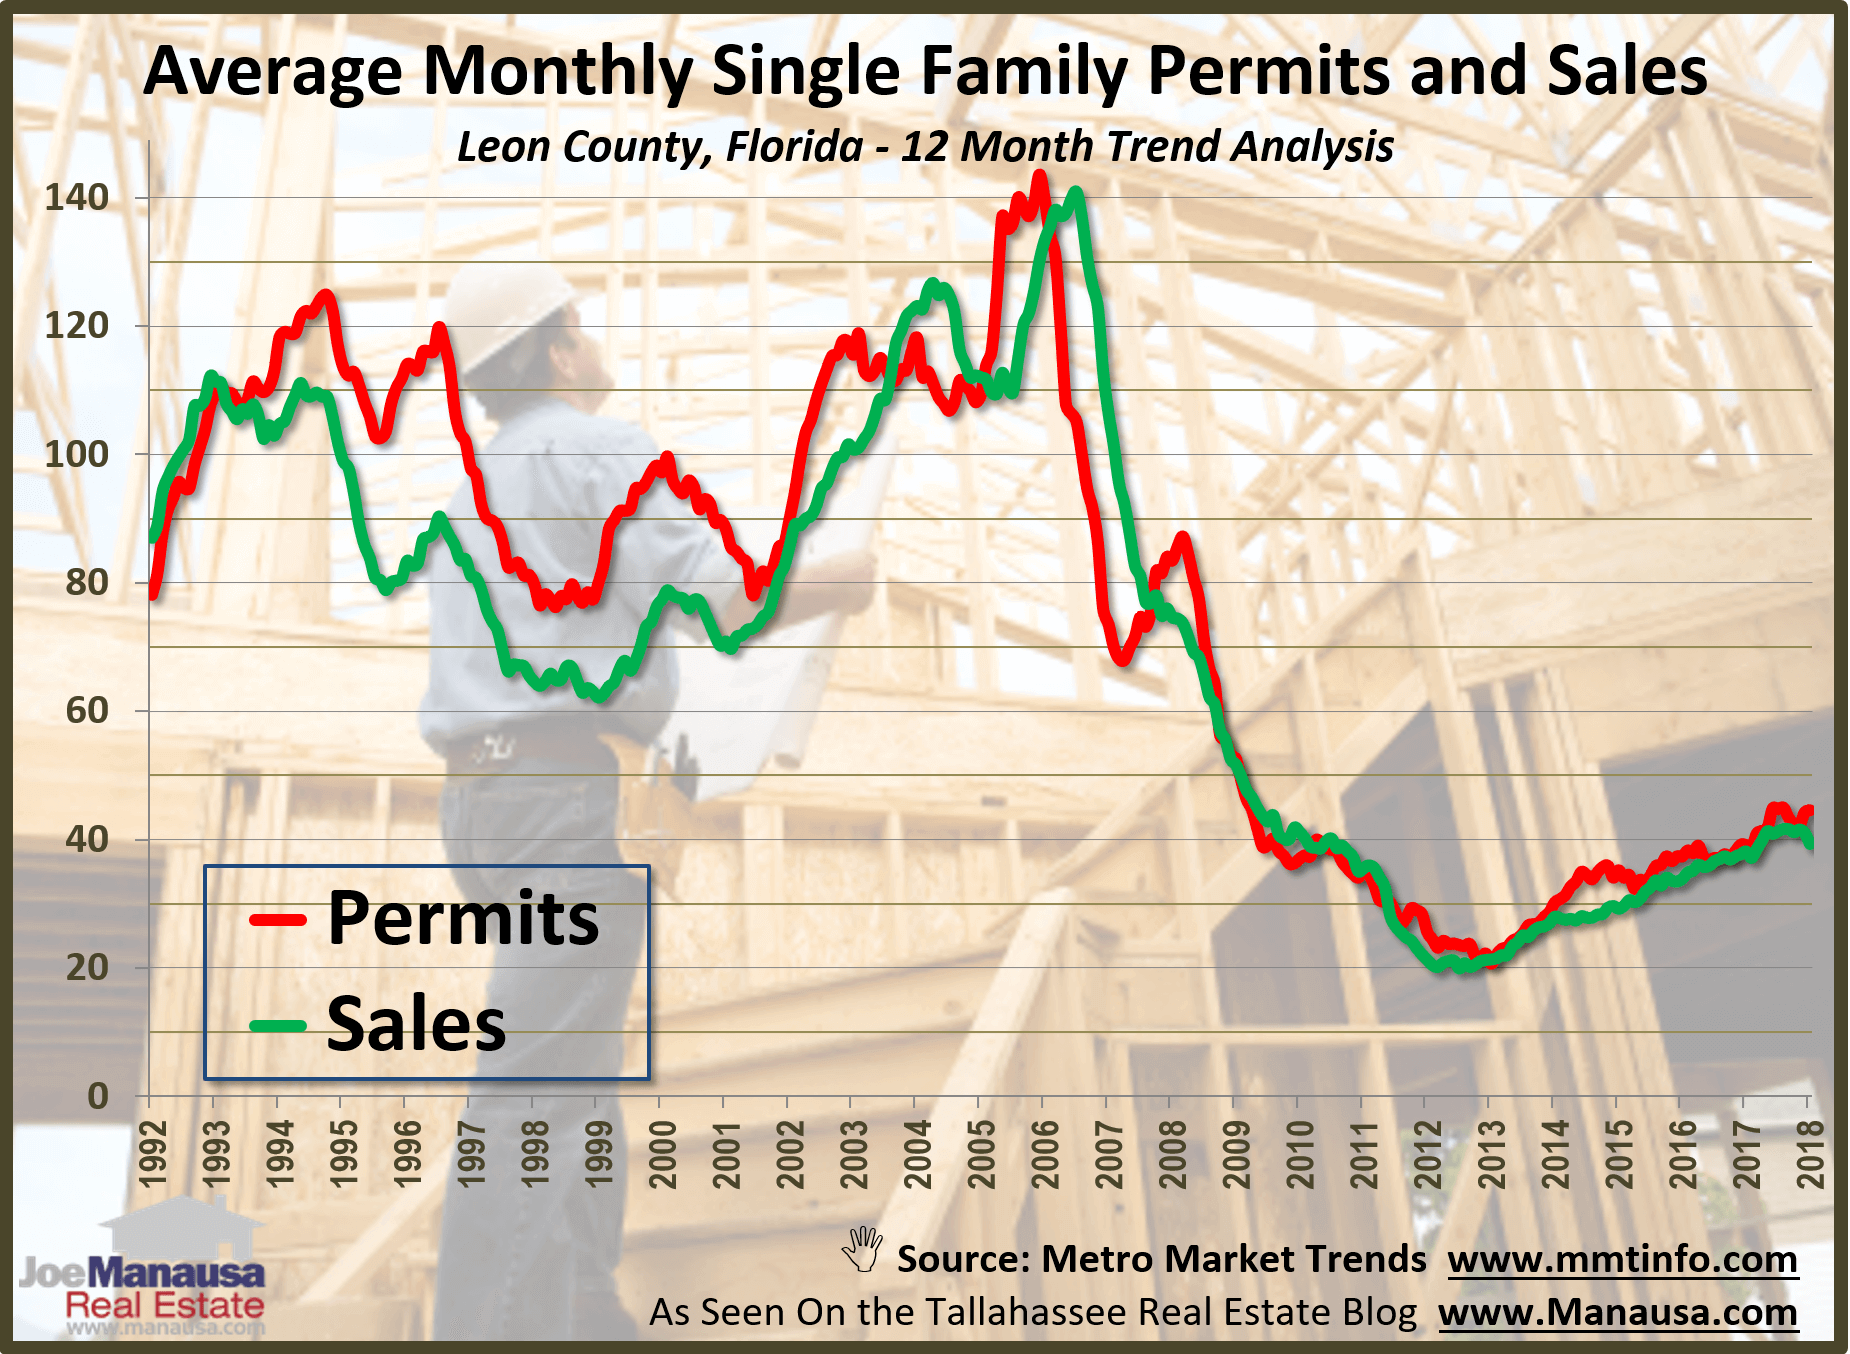 Single family permits and home sales in Tallahassee, Florida